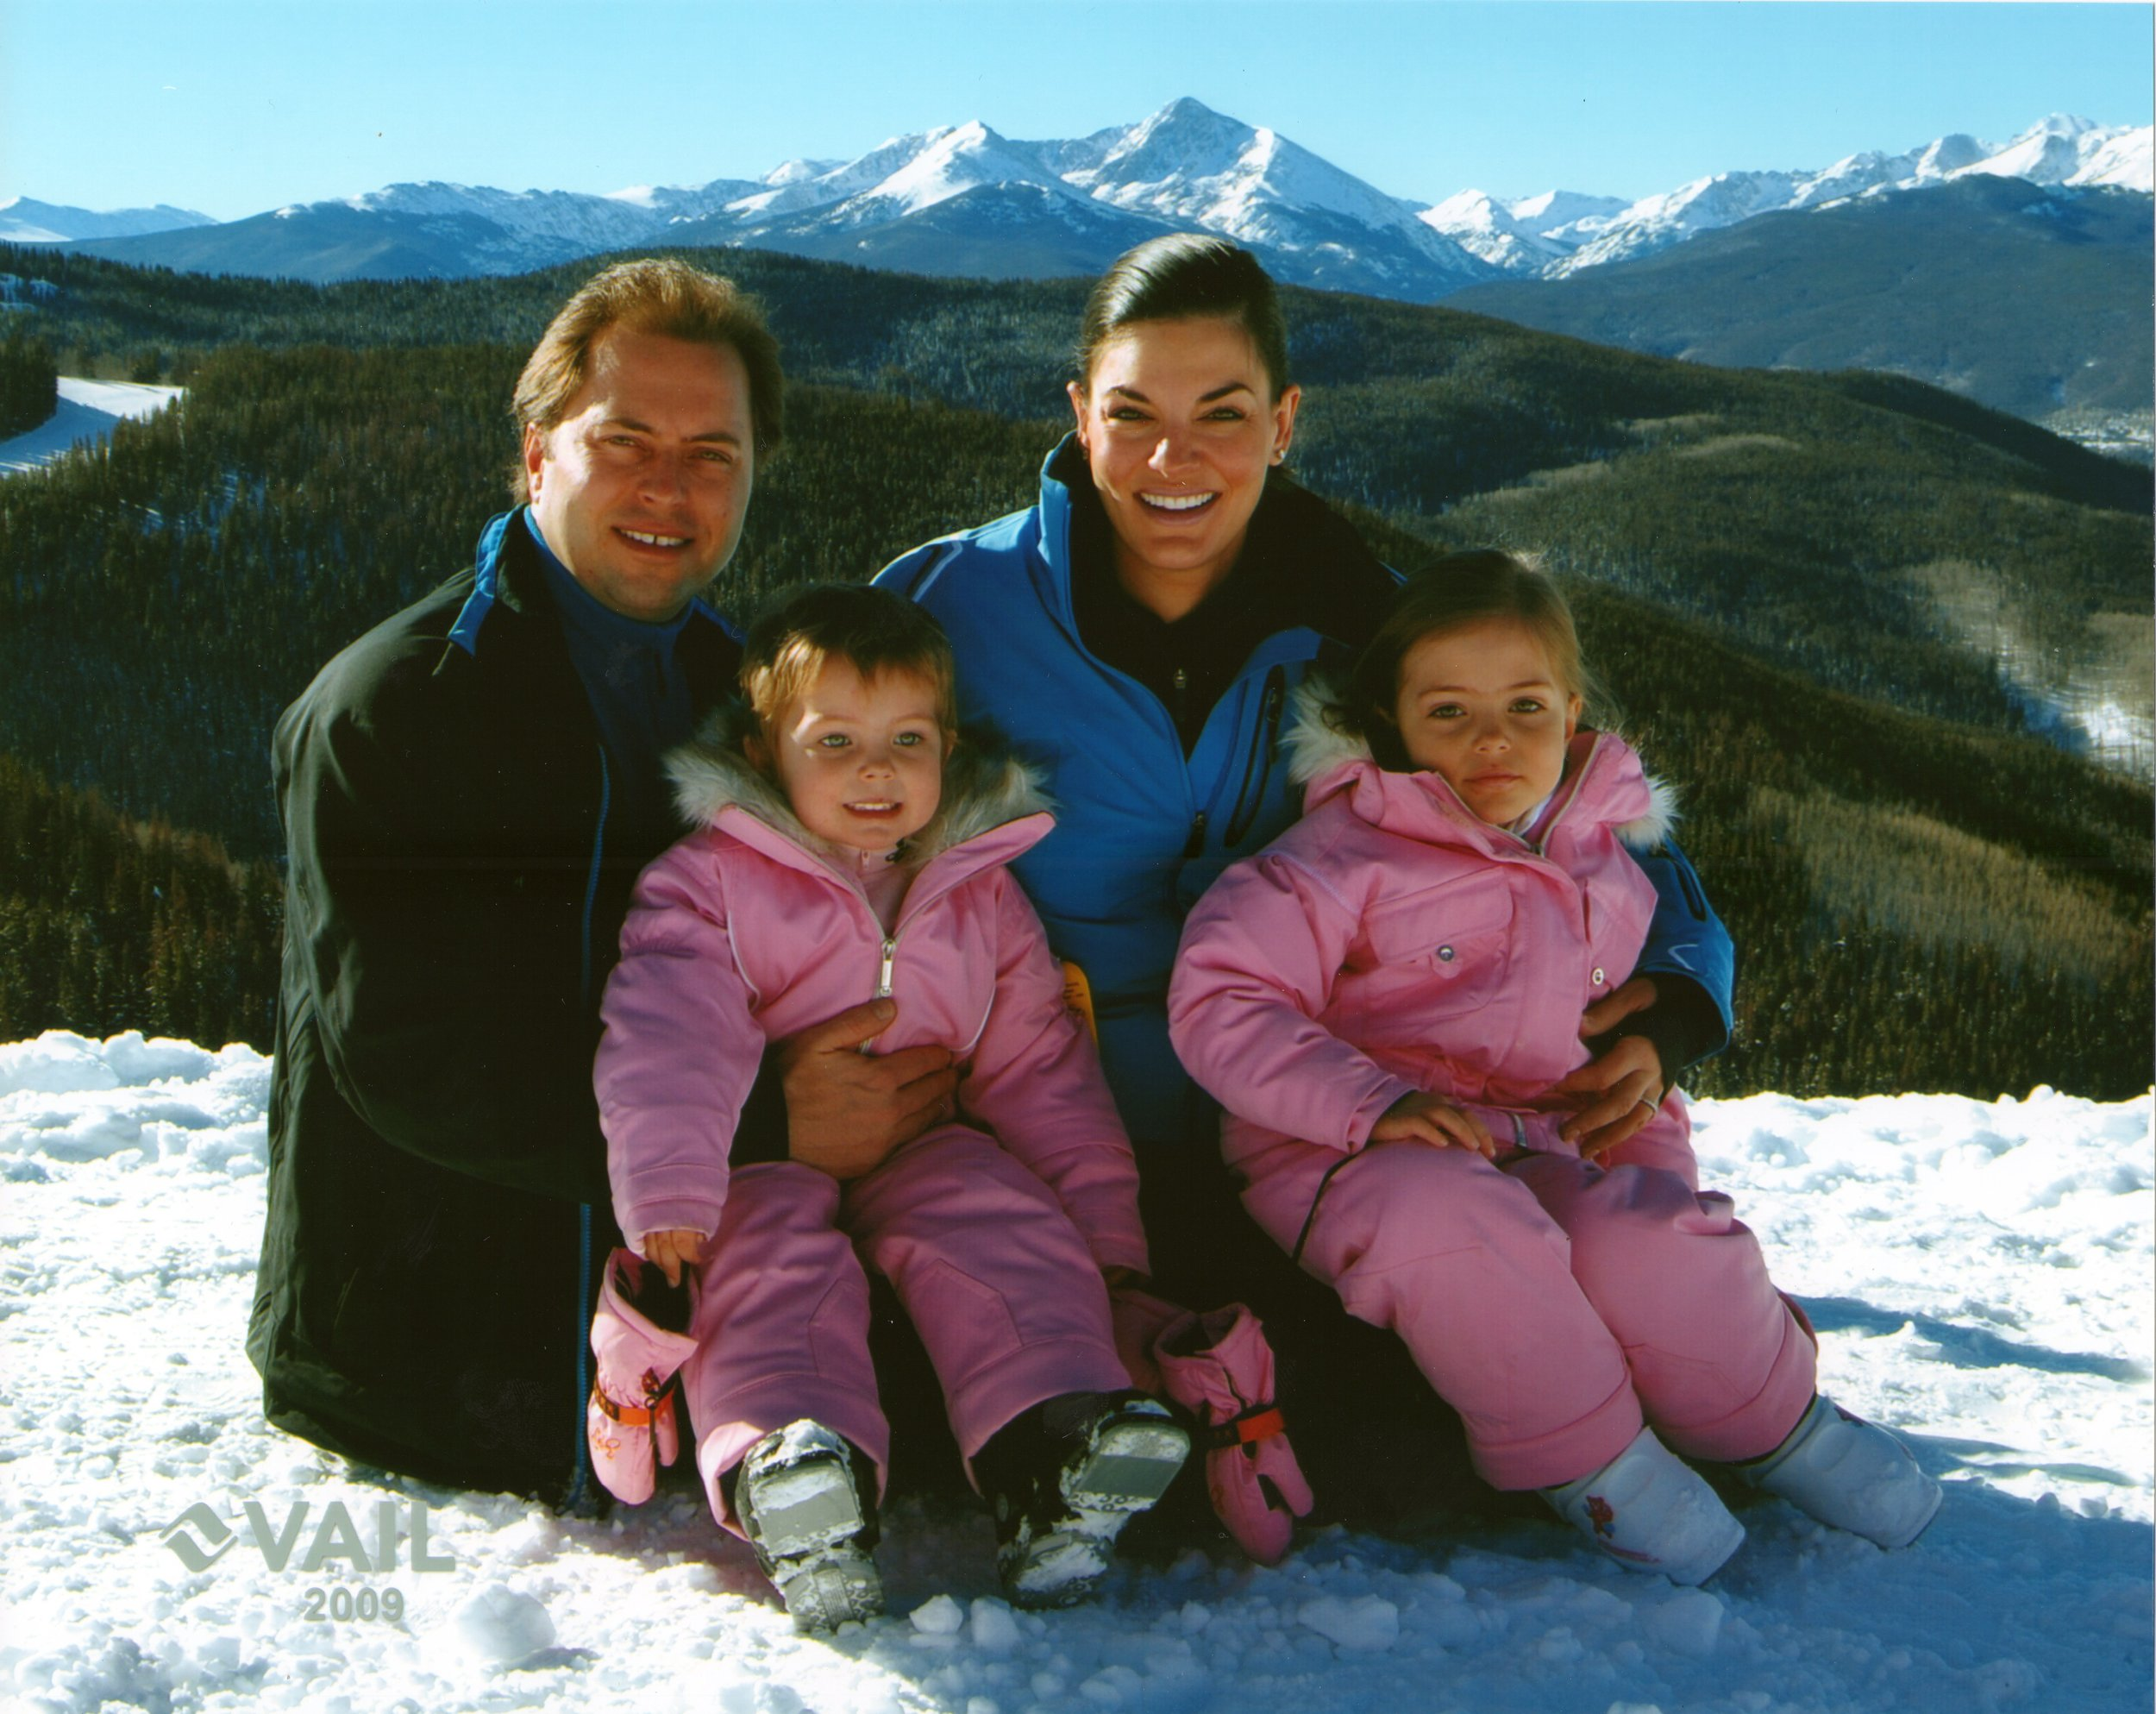 Nicole, Adam, Nawal and Neve in Vail